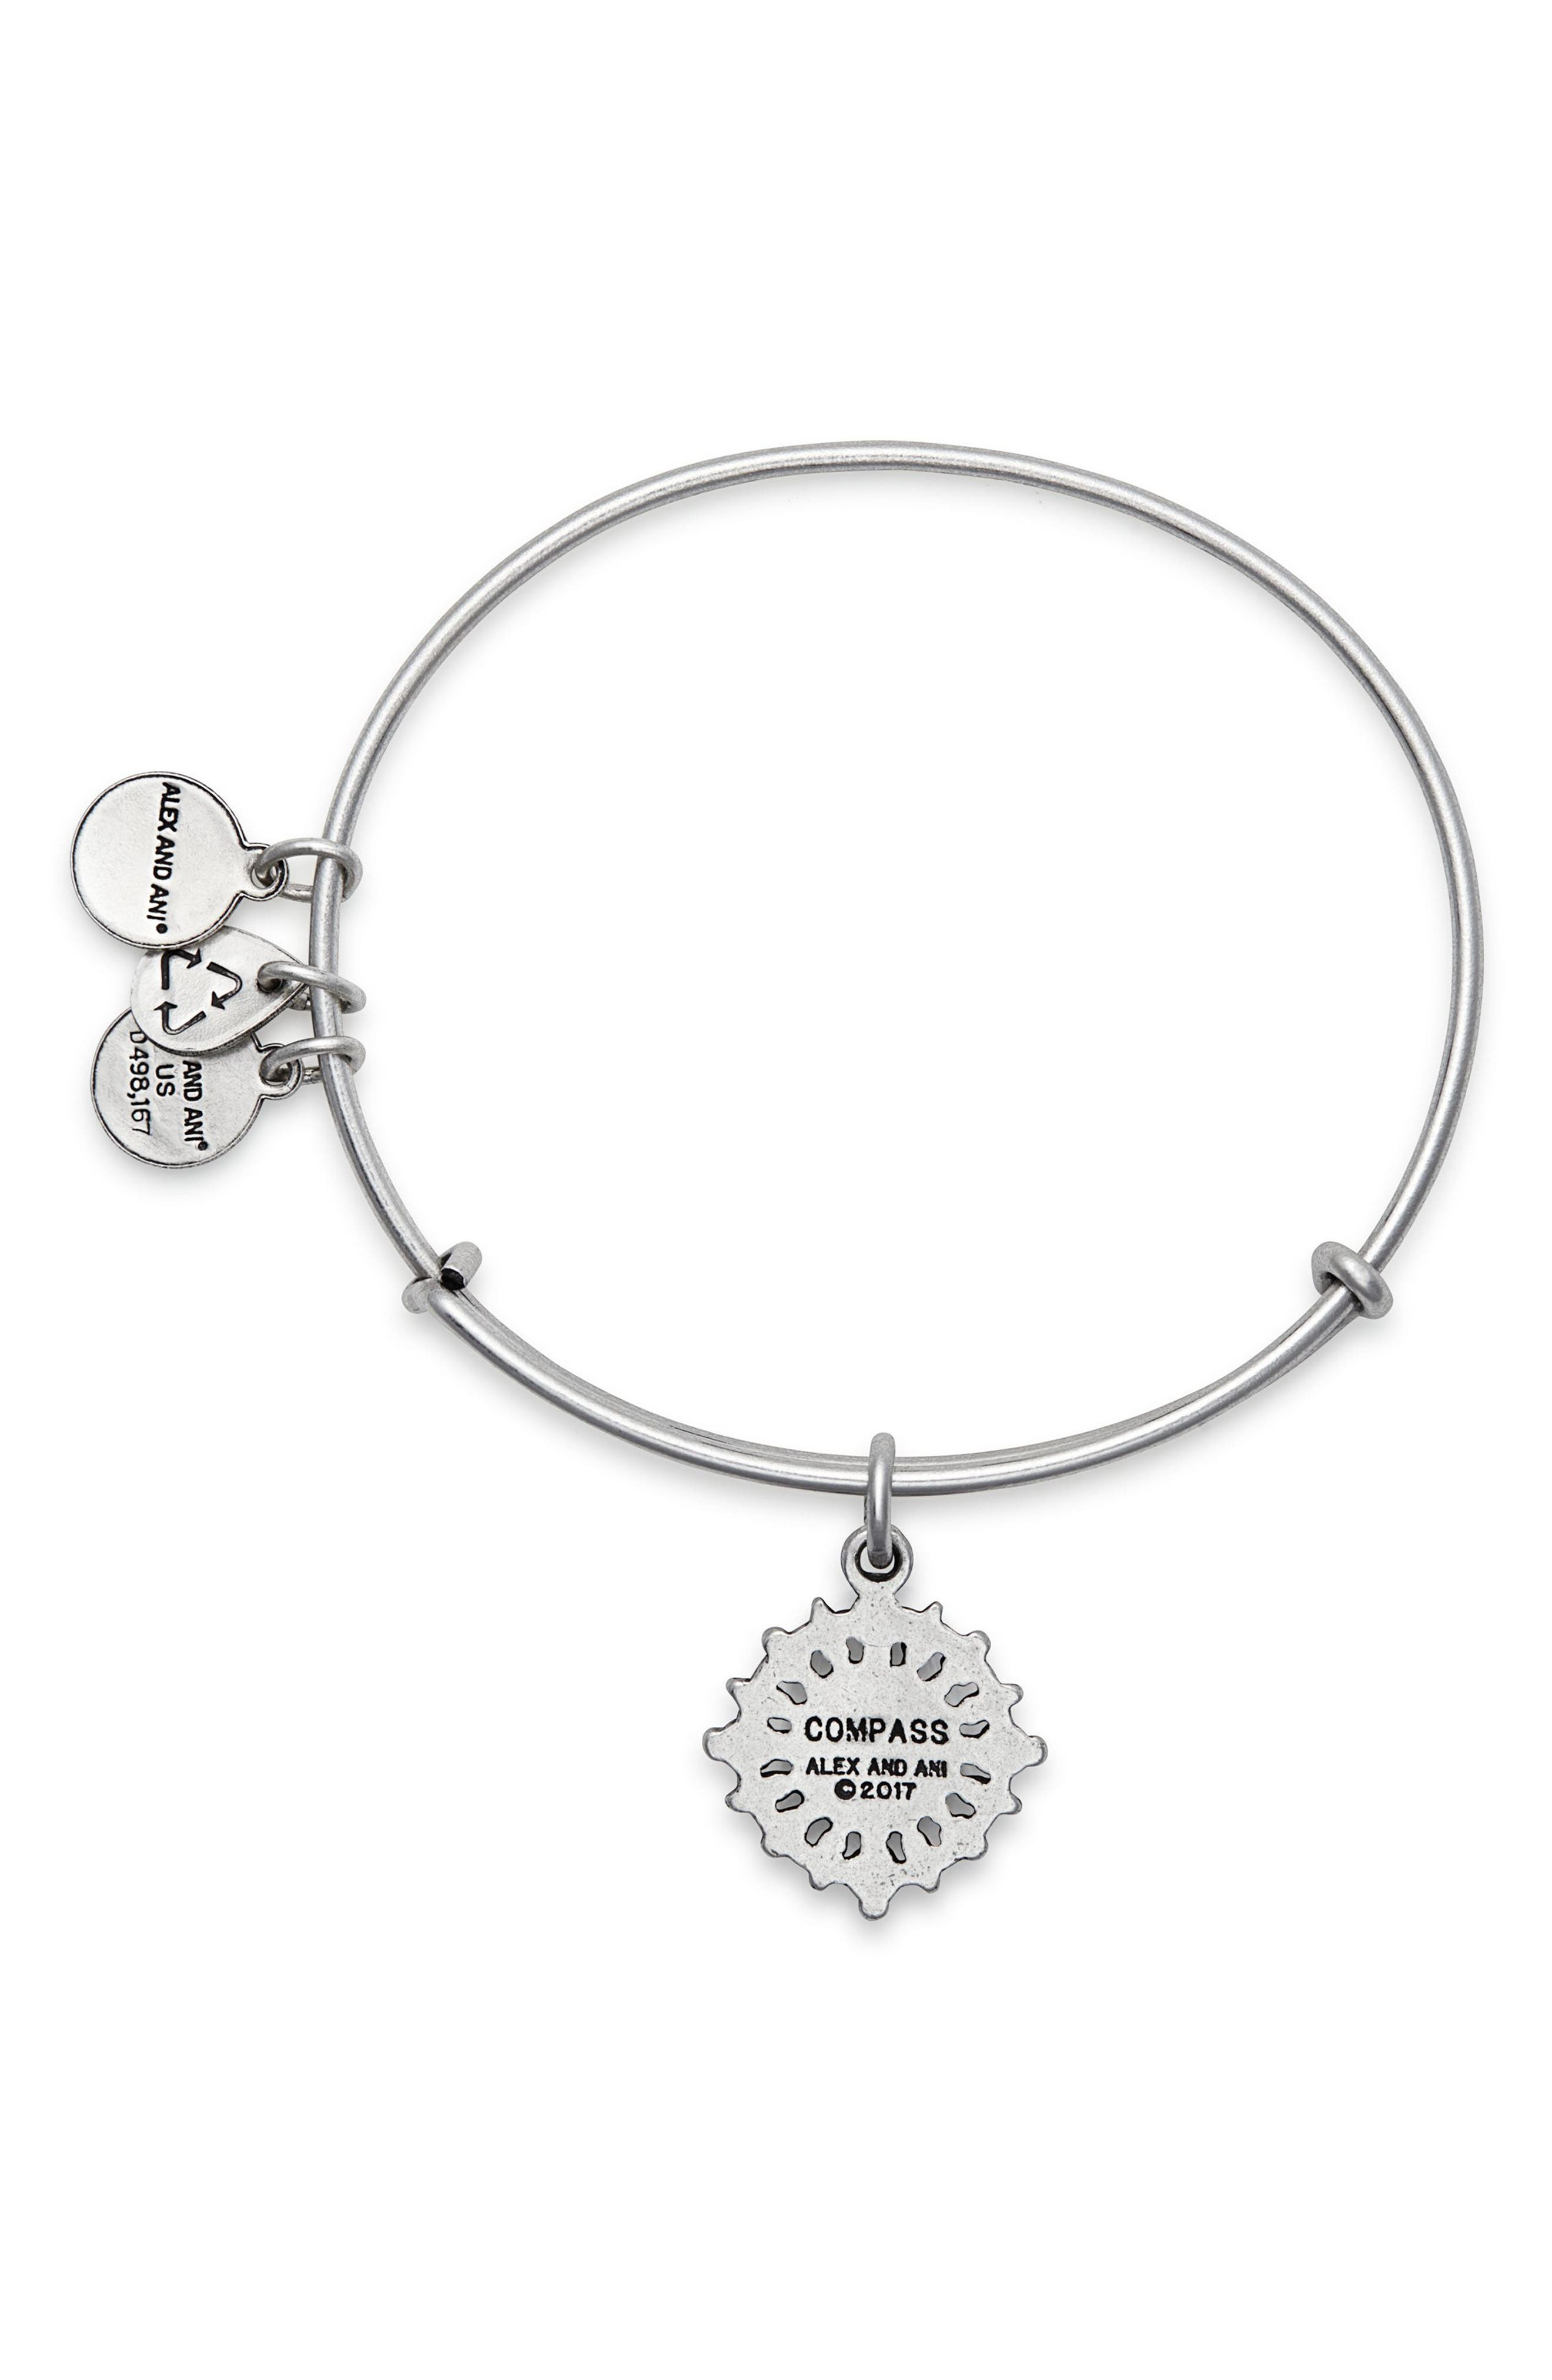 Compass Adjustable Wire Bangle,                             Alternate thumbnail 2, color,                             RUSSIAN SILVER